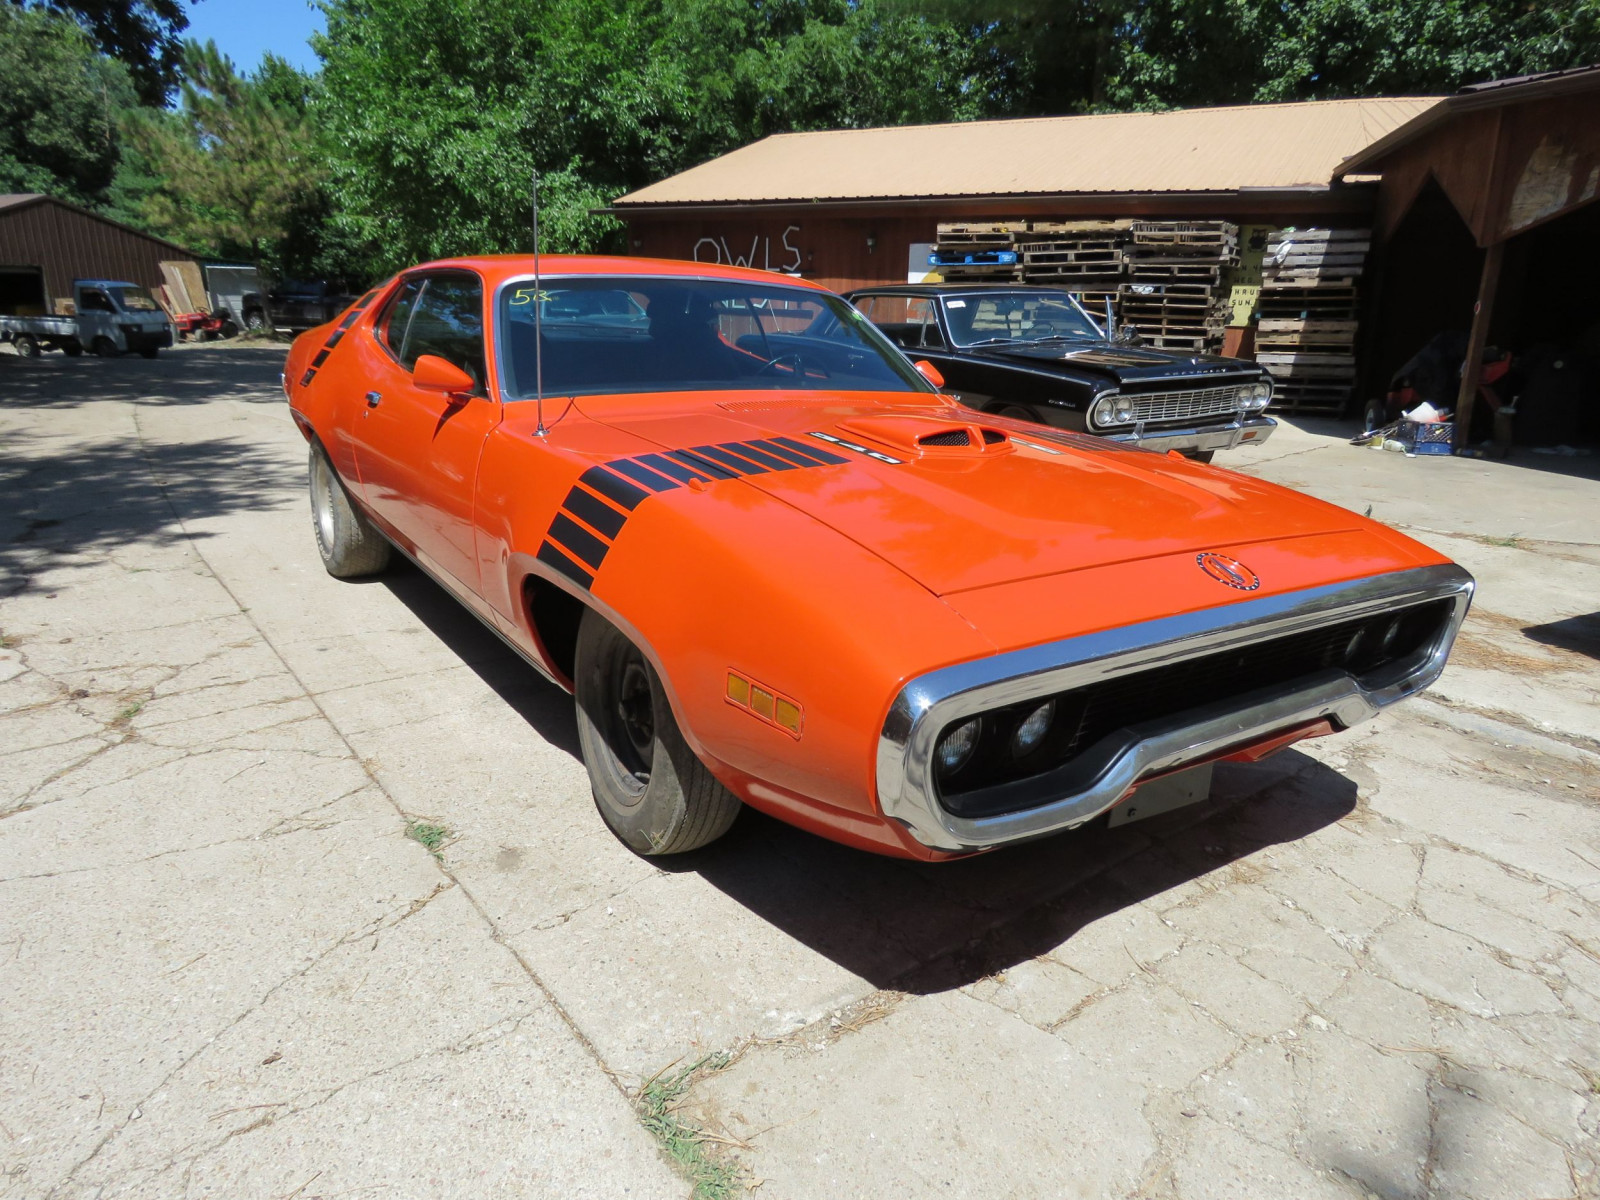 1971 Plymouth Satellite 2dr HT - Image 3